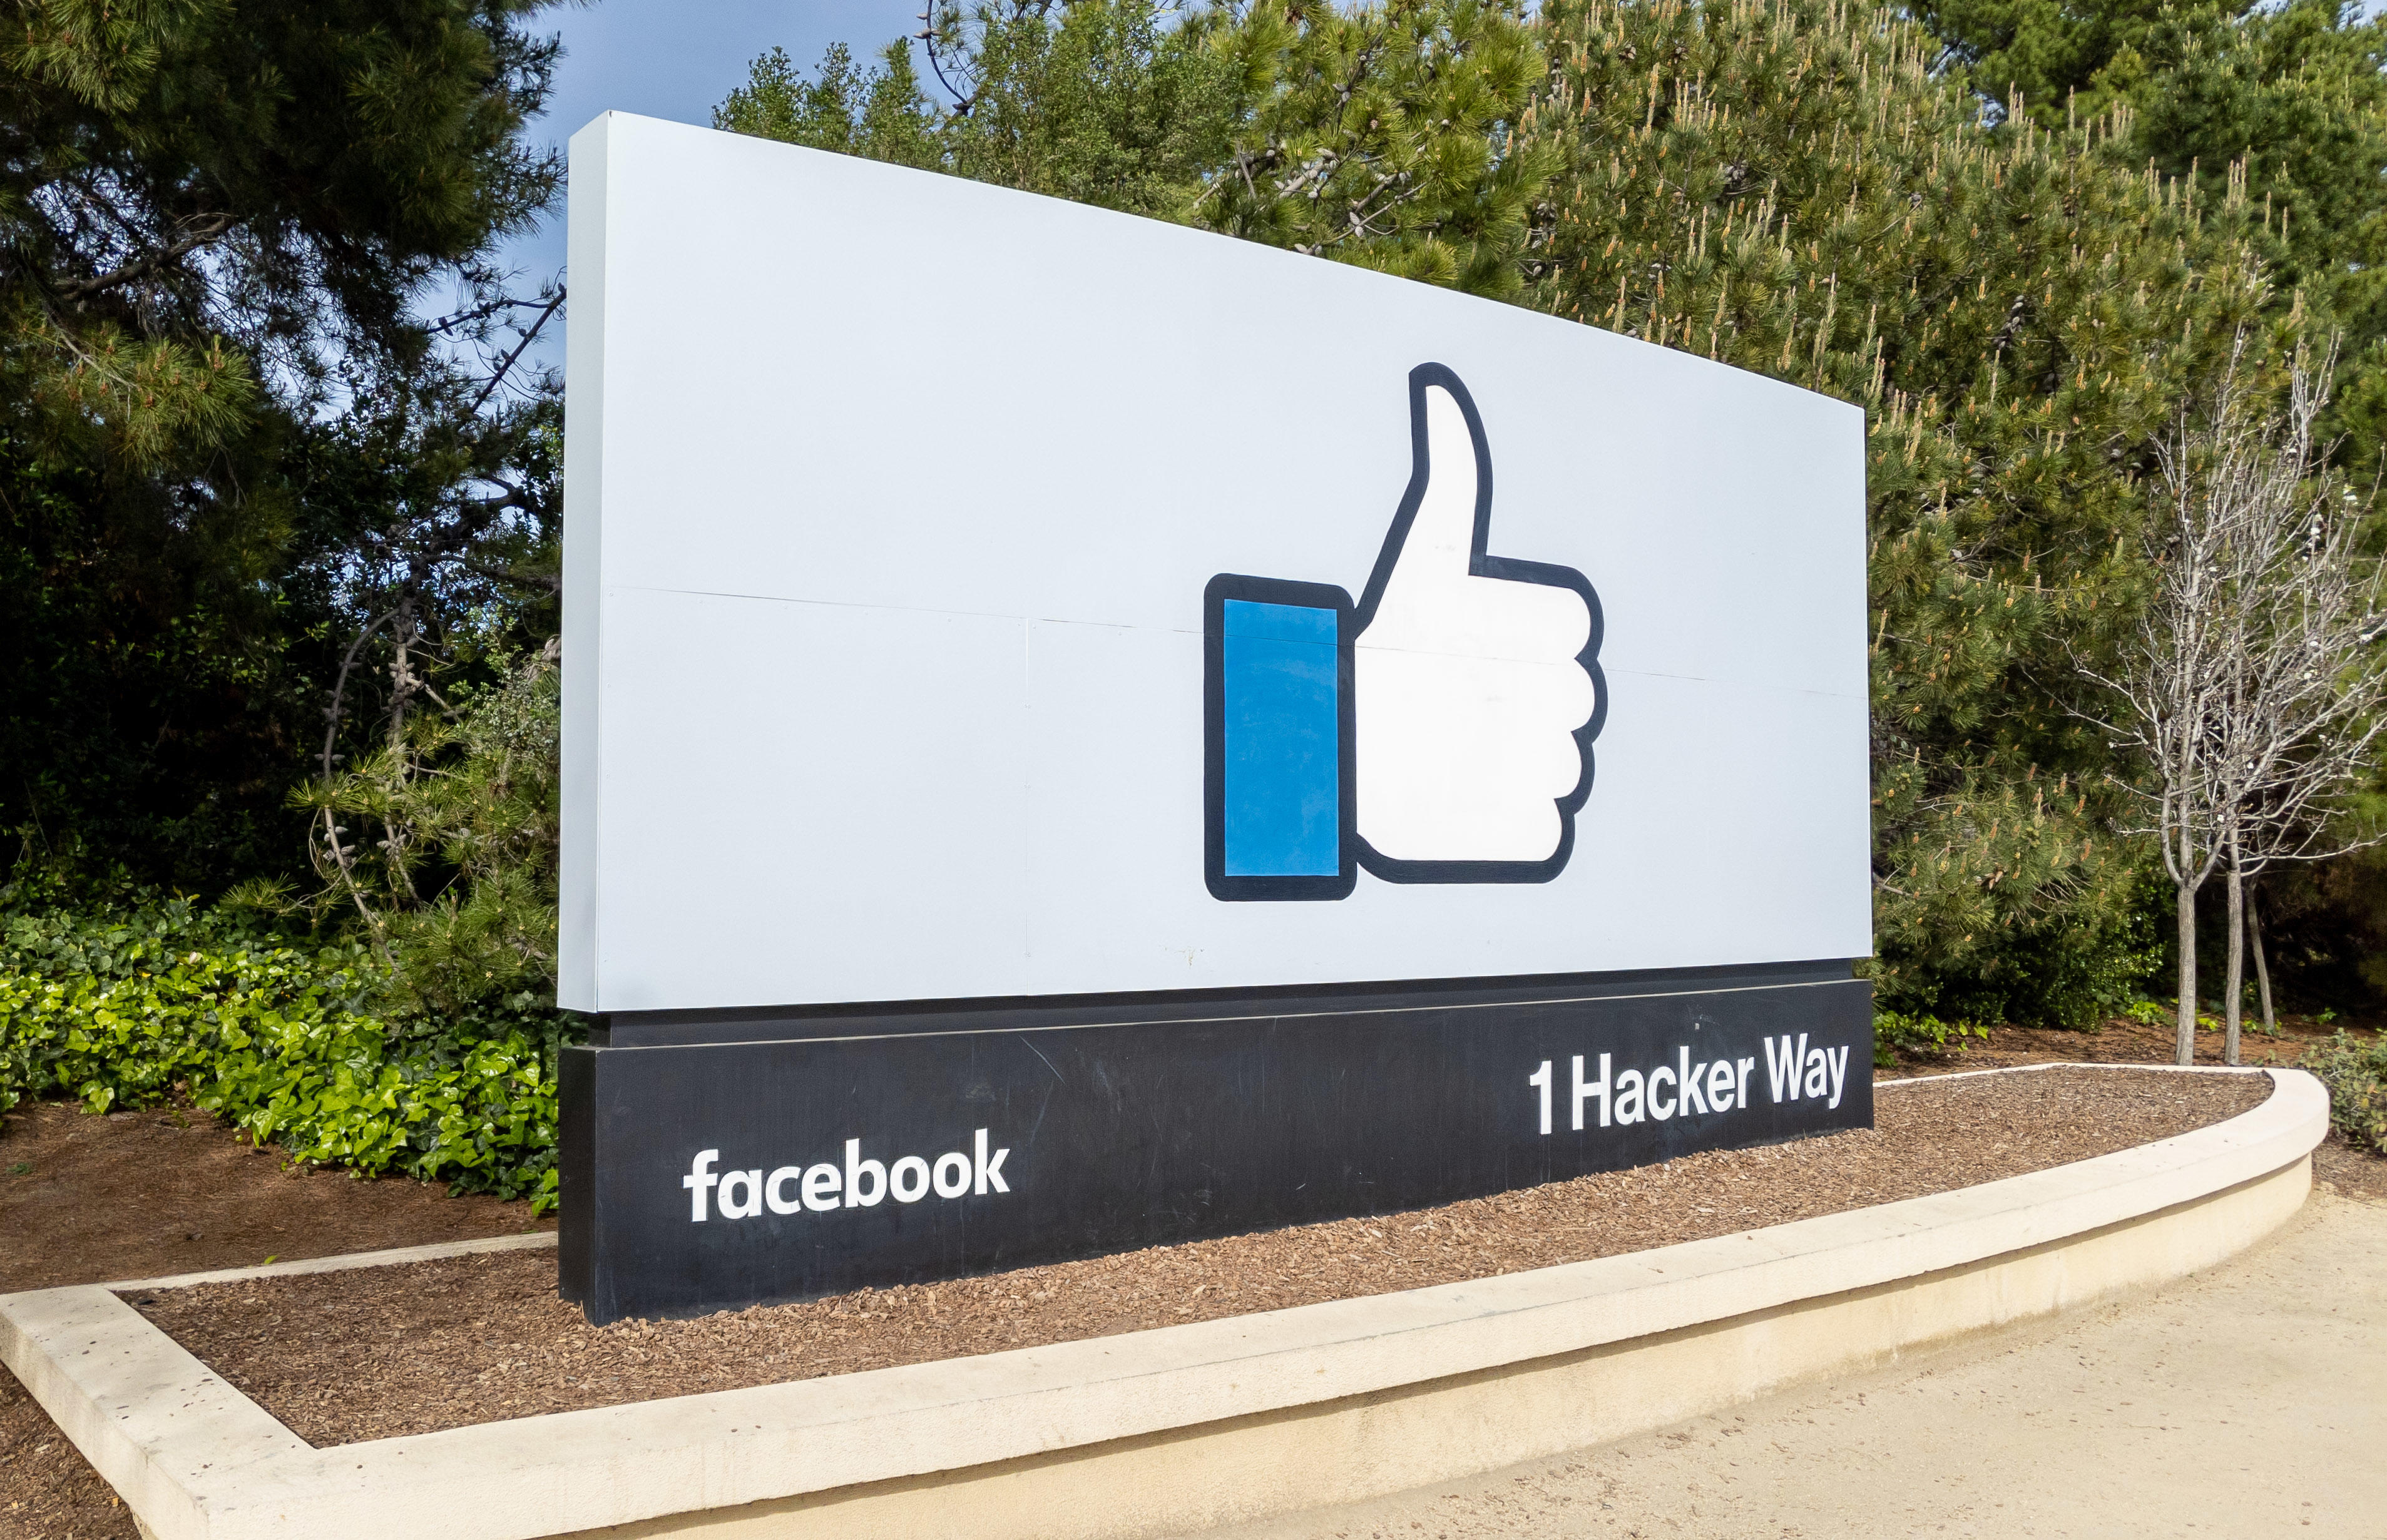 , Facebook plans to start reopening offices on May 10 – Source CNET Tech, iBSC Technologies - learning management services, LMS, Wordpress, CMS, Moodle, IT, Email, Web Hosting, Cloud Server,Cloud Computing